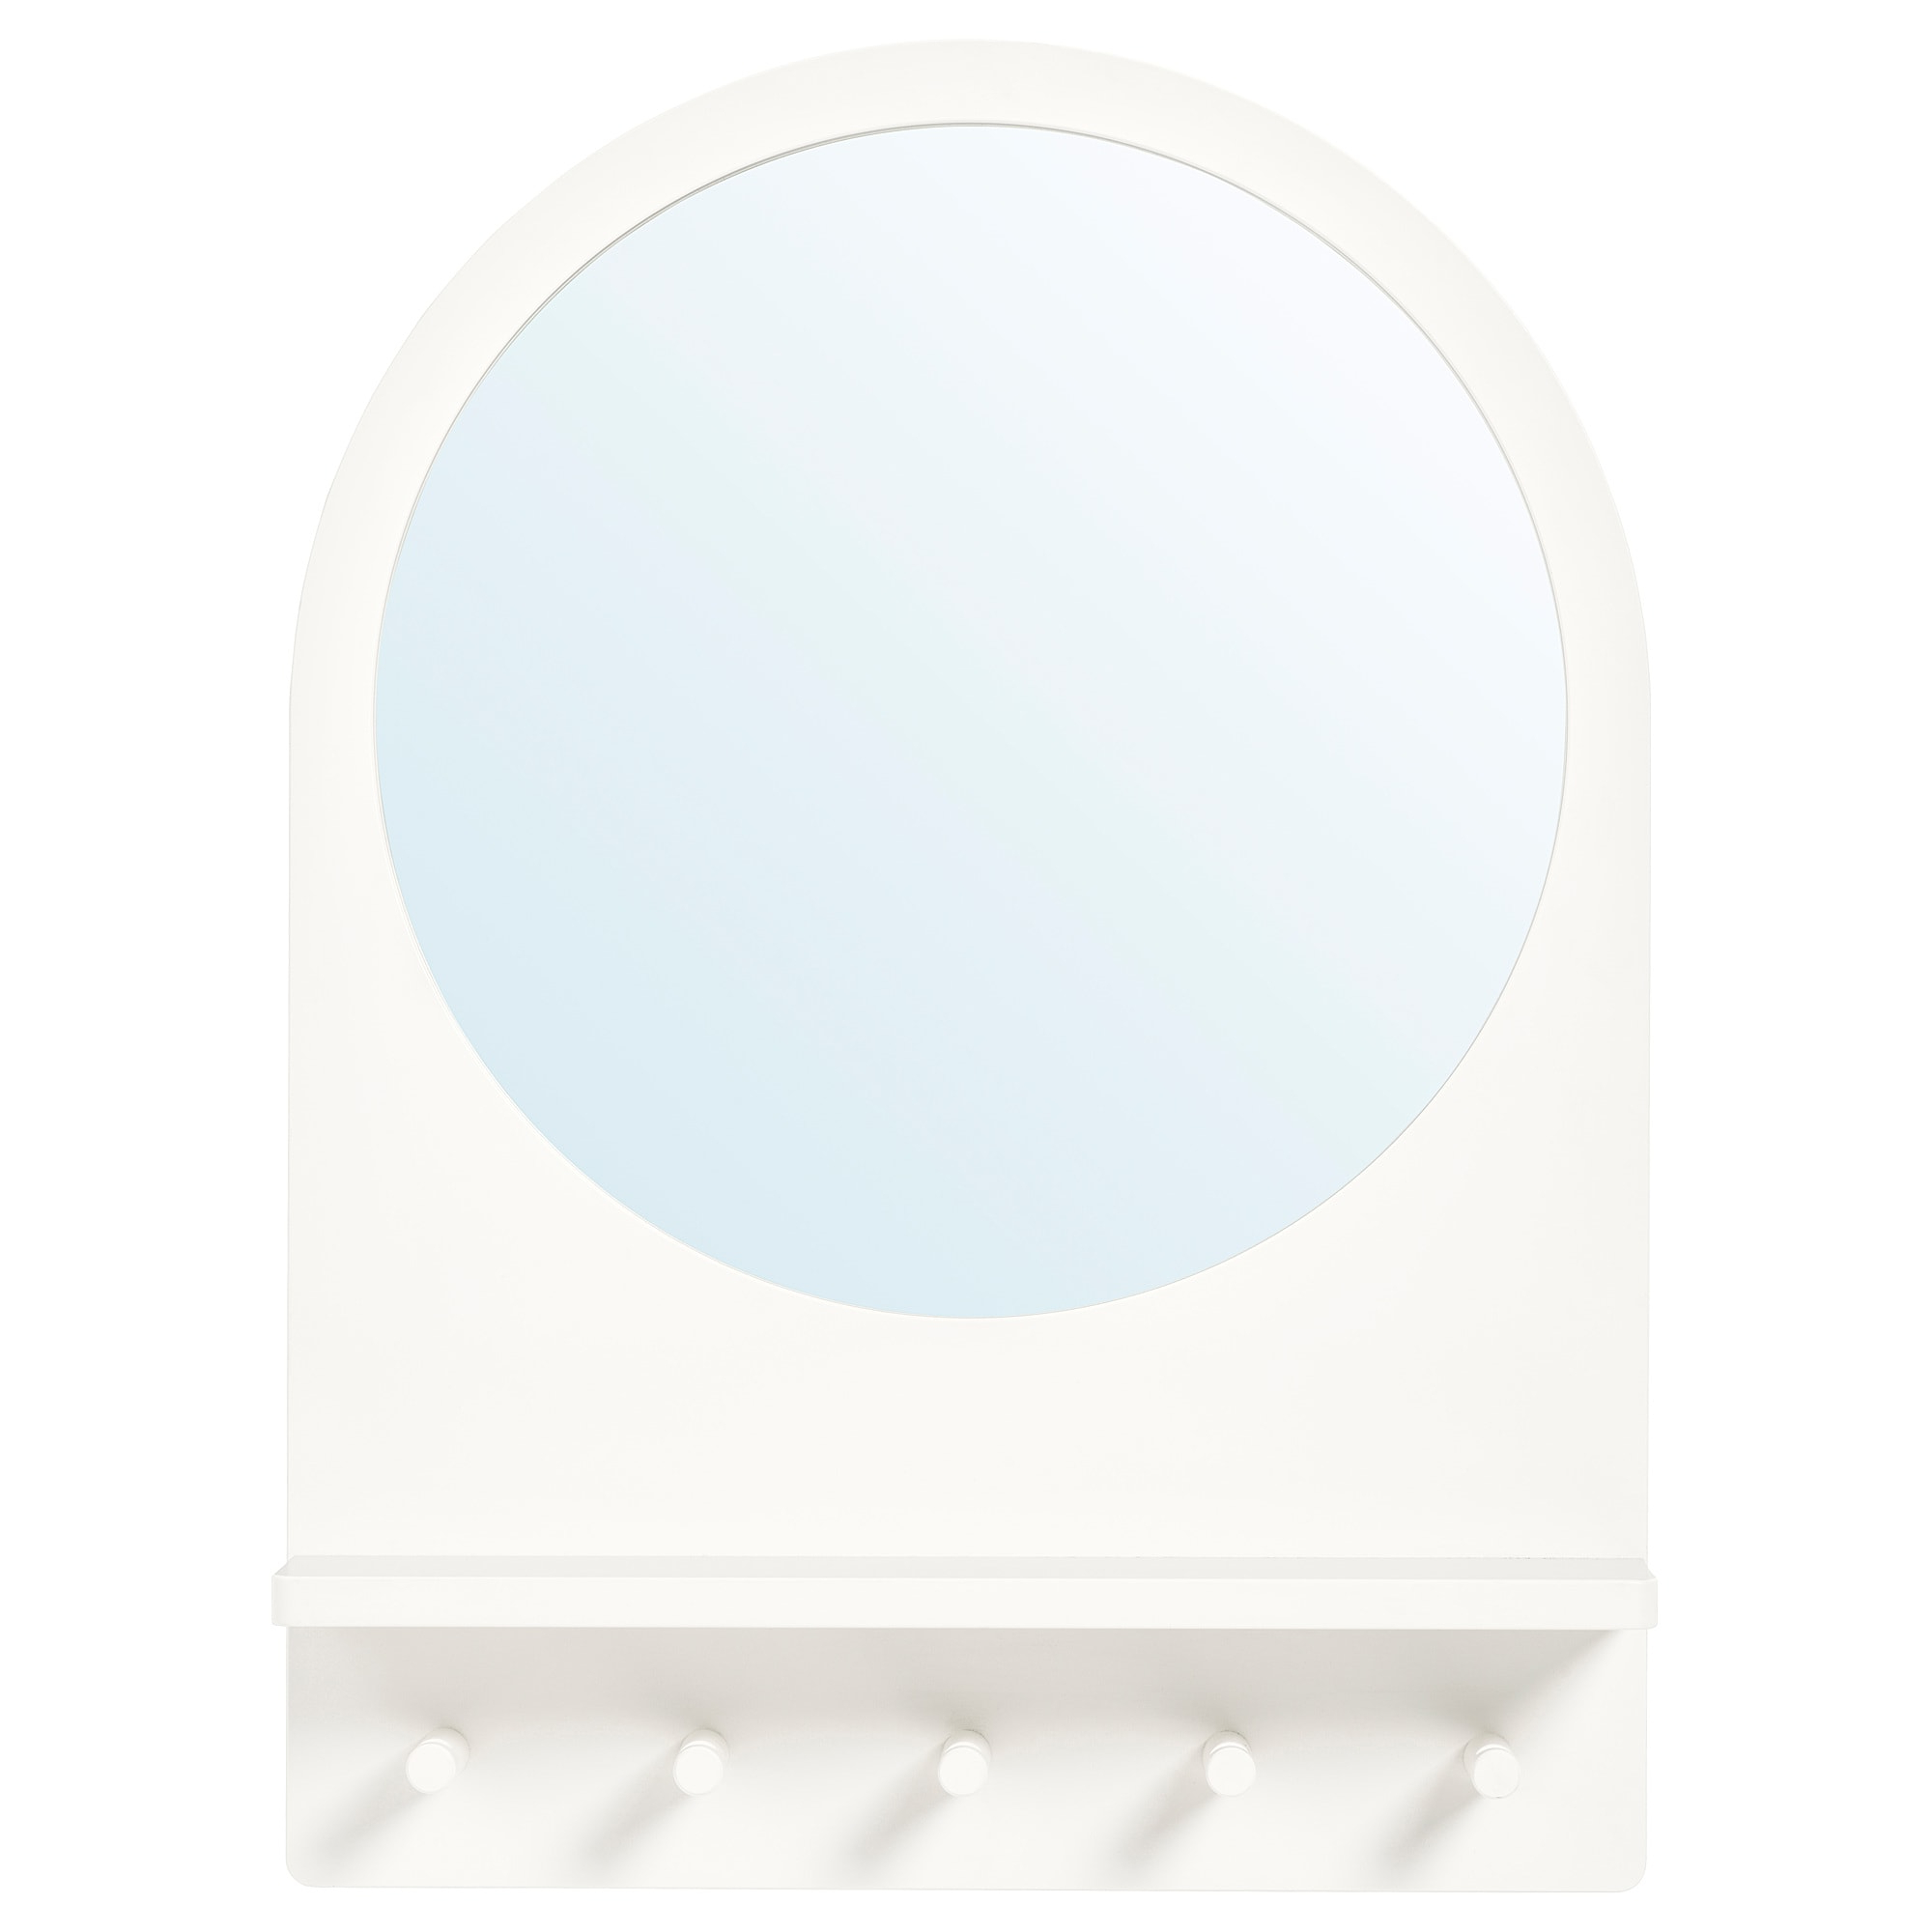 Ikea Round Wall Mirrors In Preferred Saltröd – Mirror With Shelf And Hooks, White (View 14 of 20)